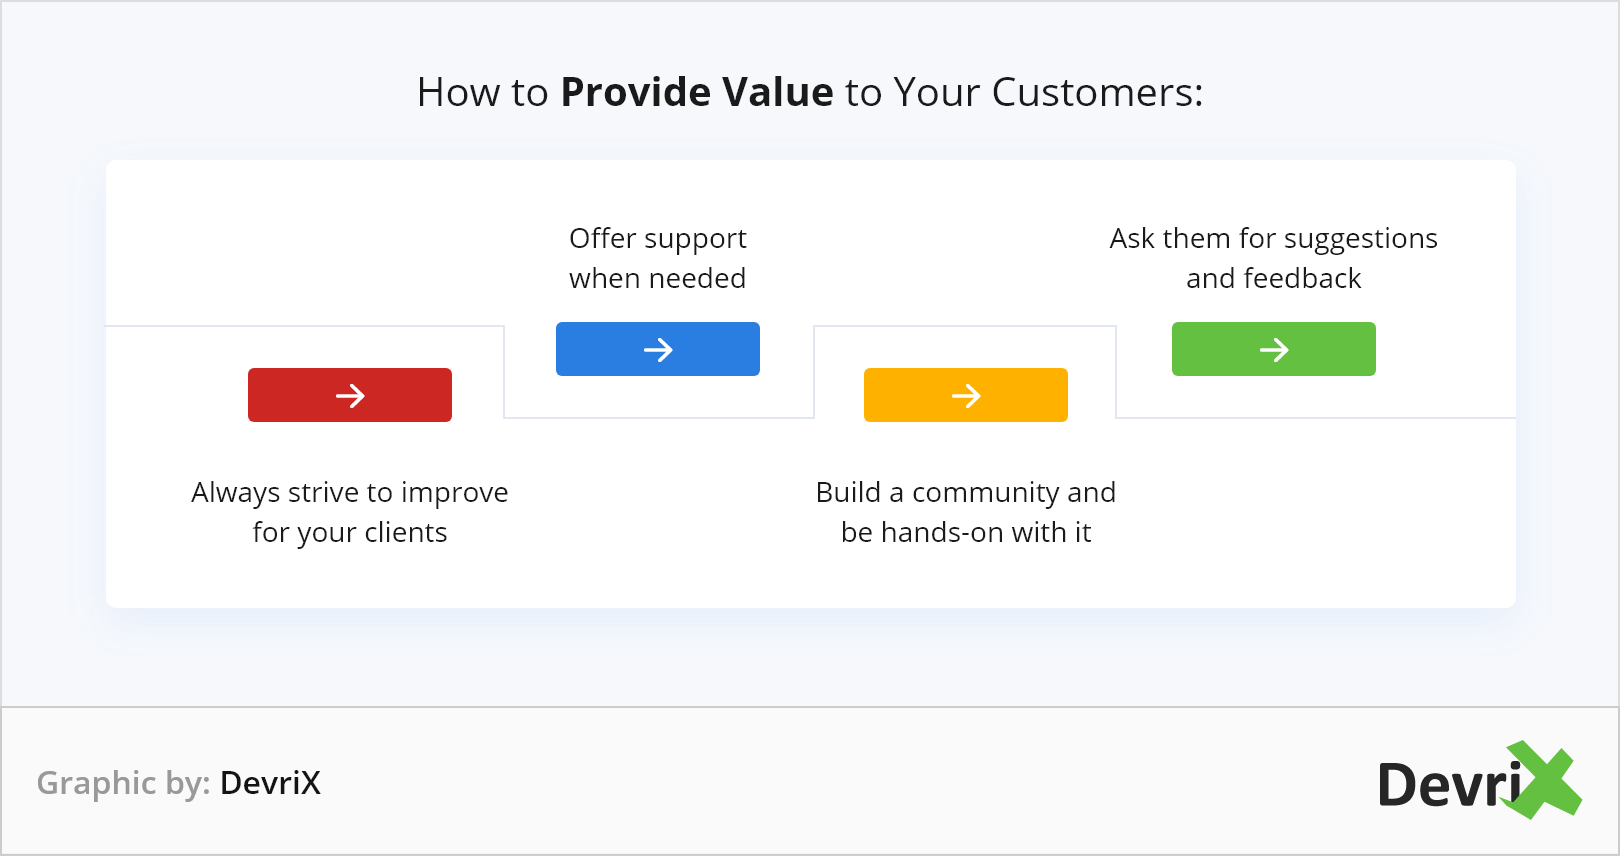 How to Provide Value to Your Customers